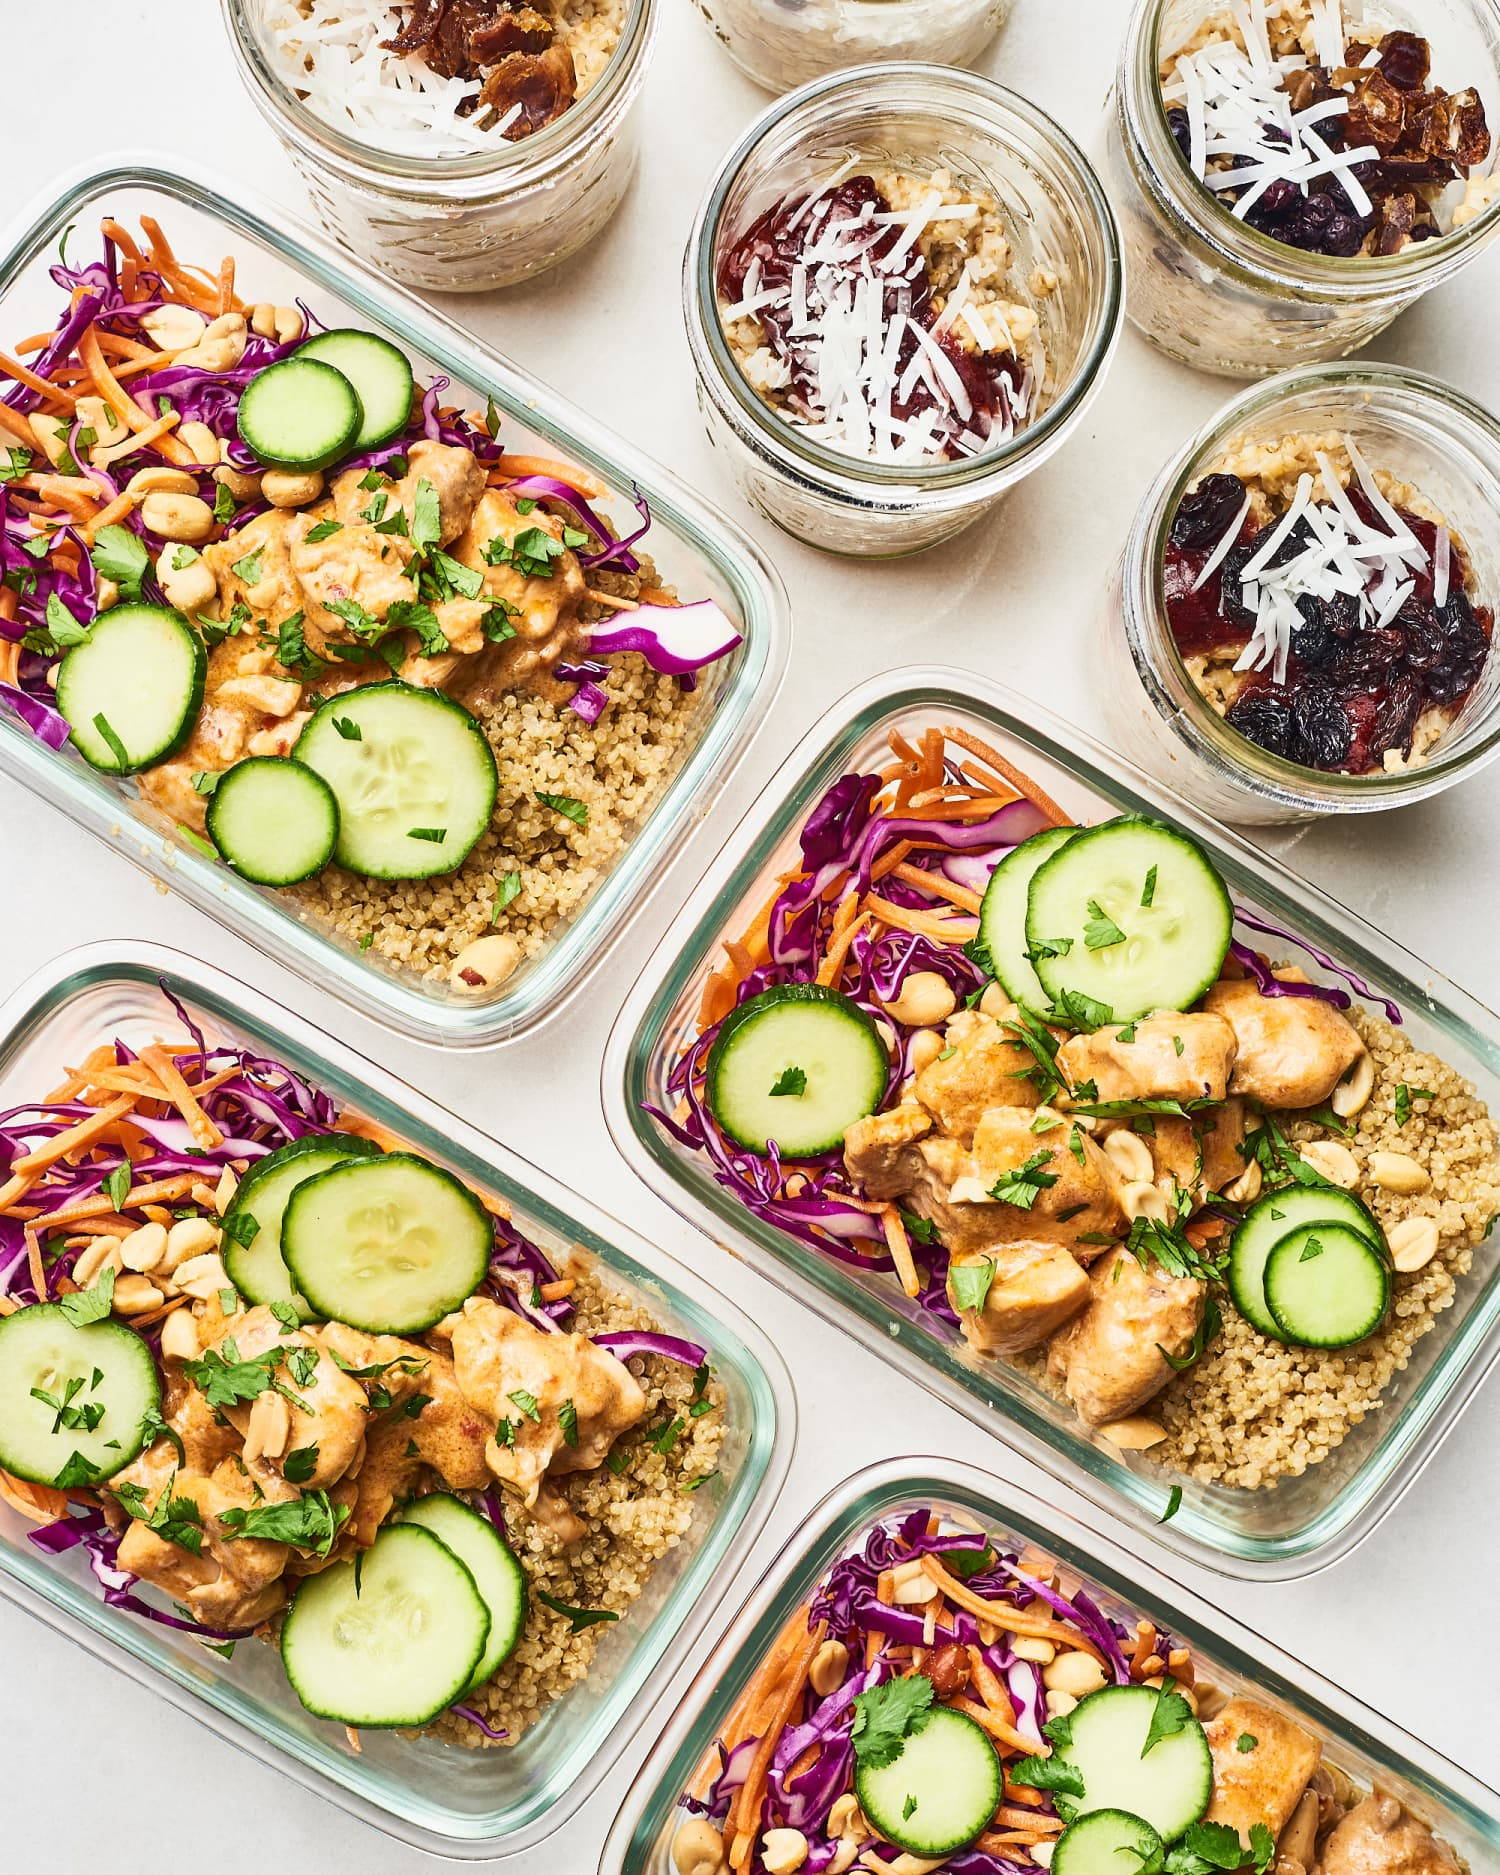 25 Recipes That Will Make Weekend Meal Prep Easier